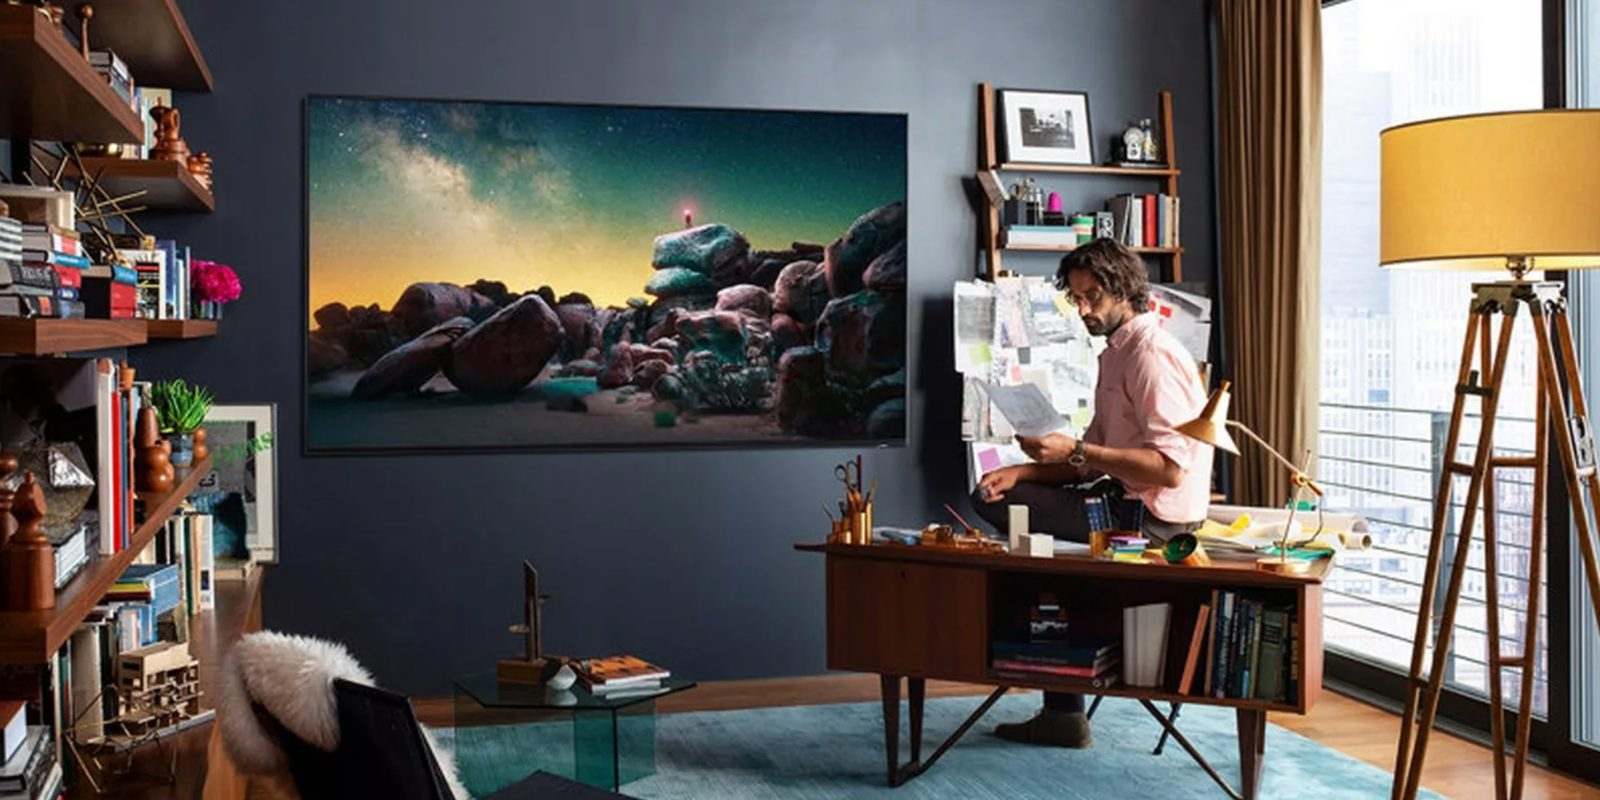 Samsung Q900R 8K TV now avaliable for pre-order - 9to5Toys